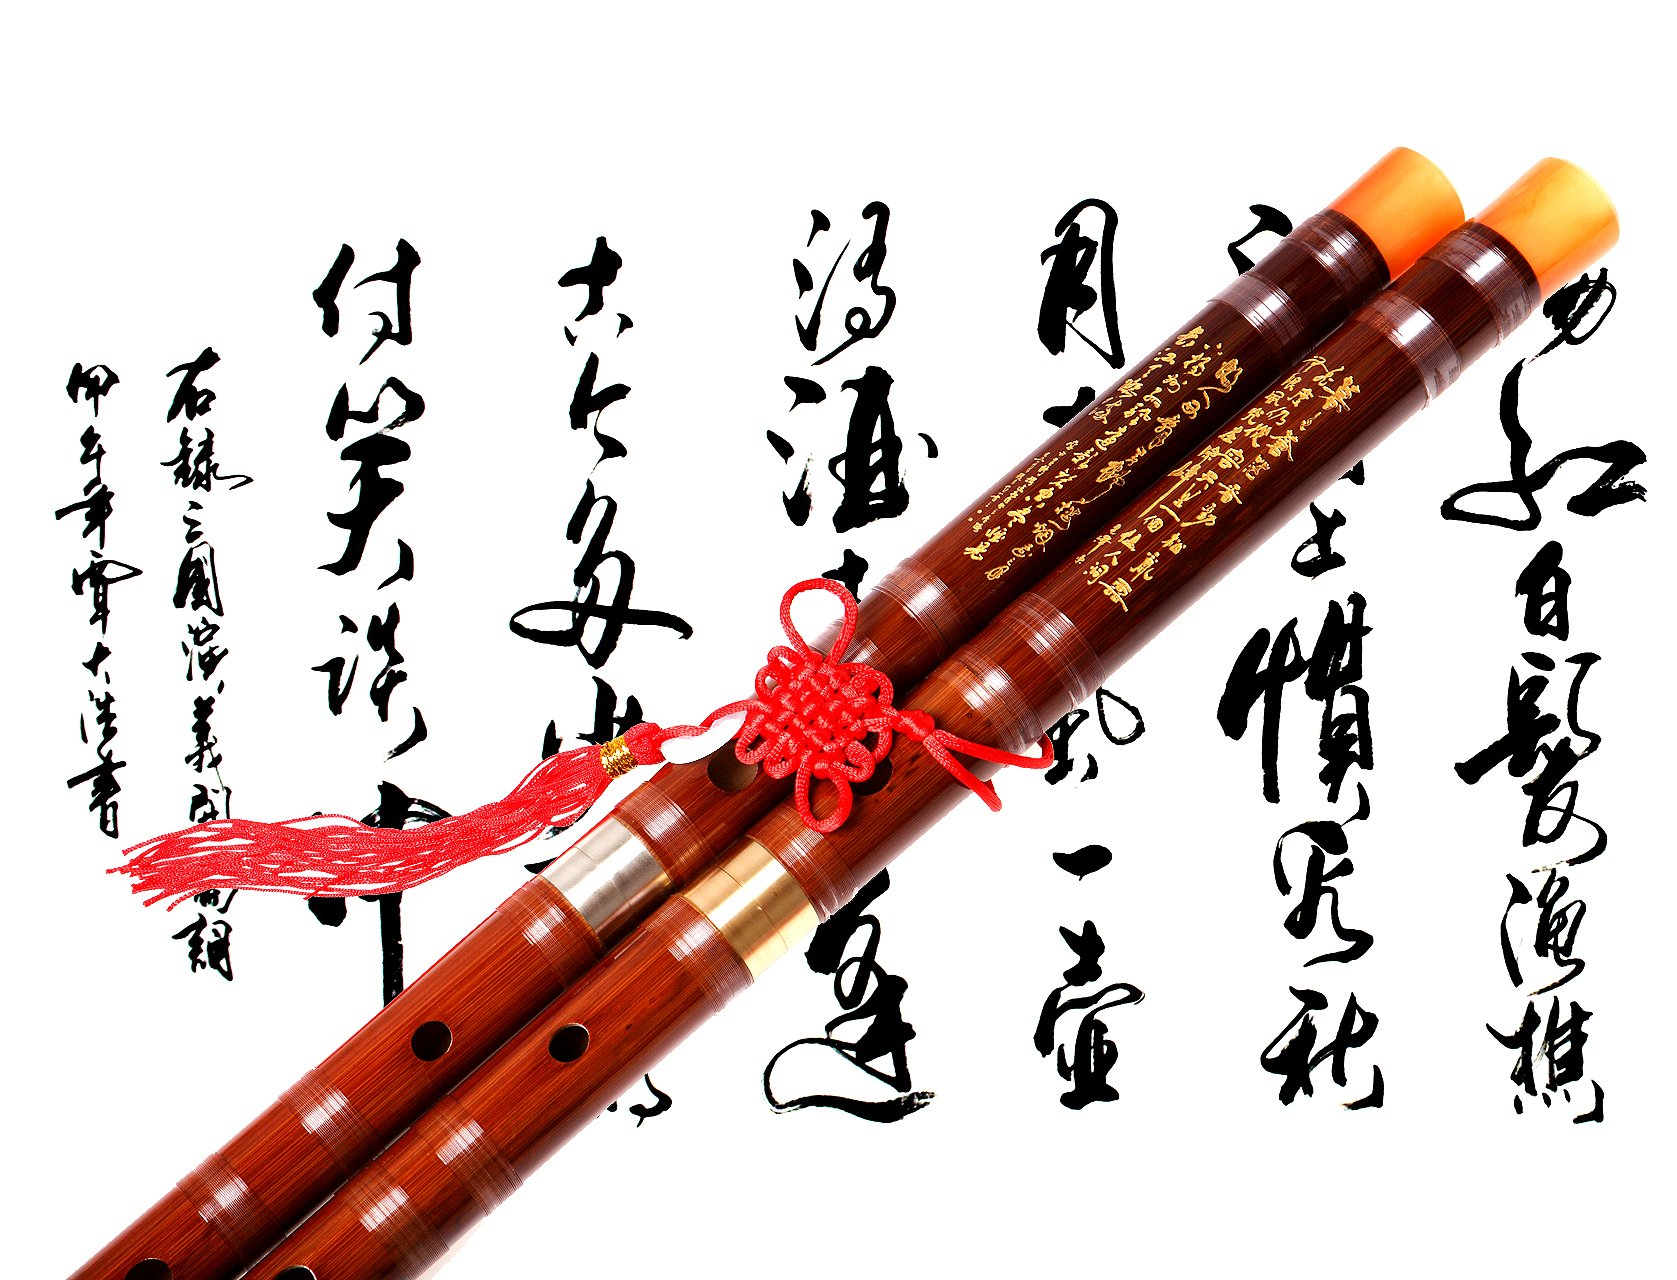 Bamboo Flute Dizi,NICOSHINE Traditional Handmade Chinese Musical Instrument In C Key(Single insert) by NS Musical